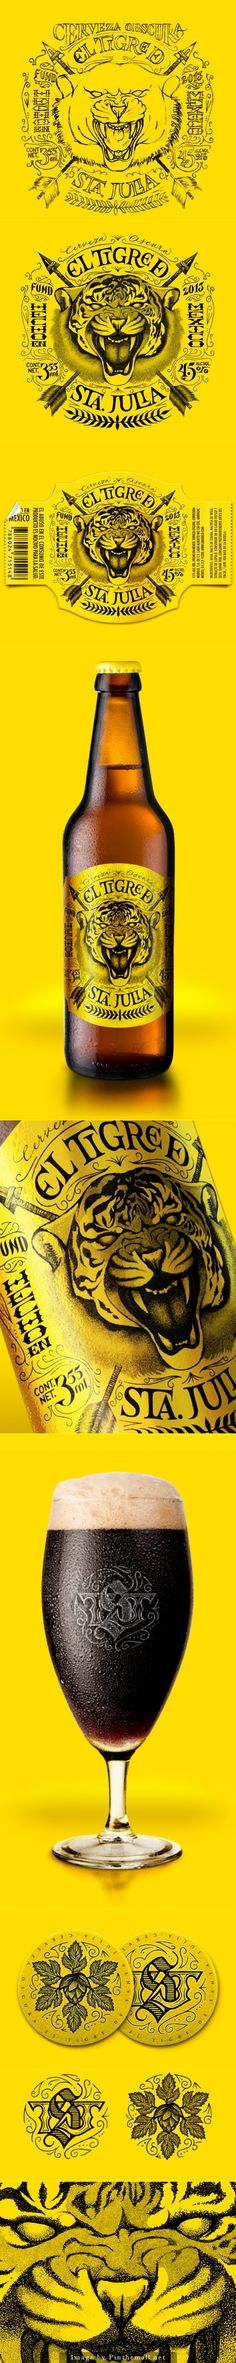 El Tigre de Santa Julia Designer: Christian Antolin Country: United States